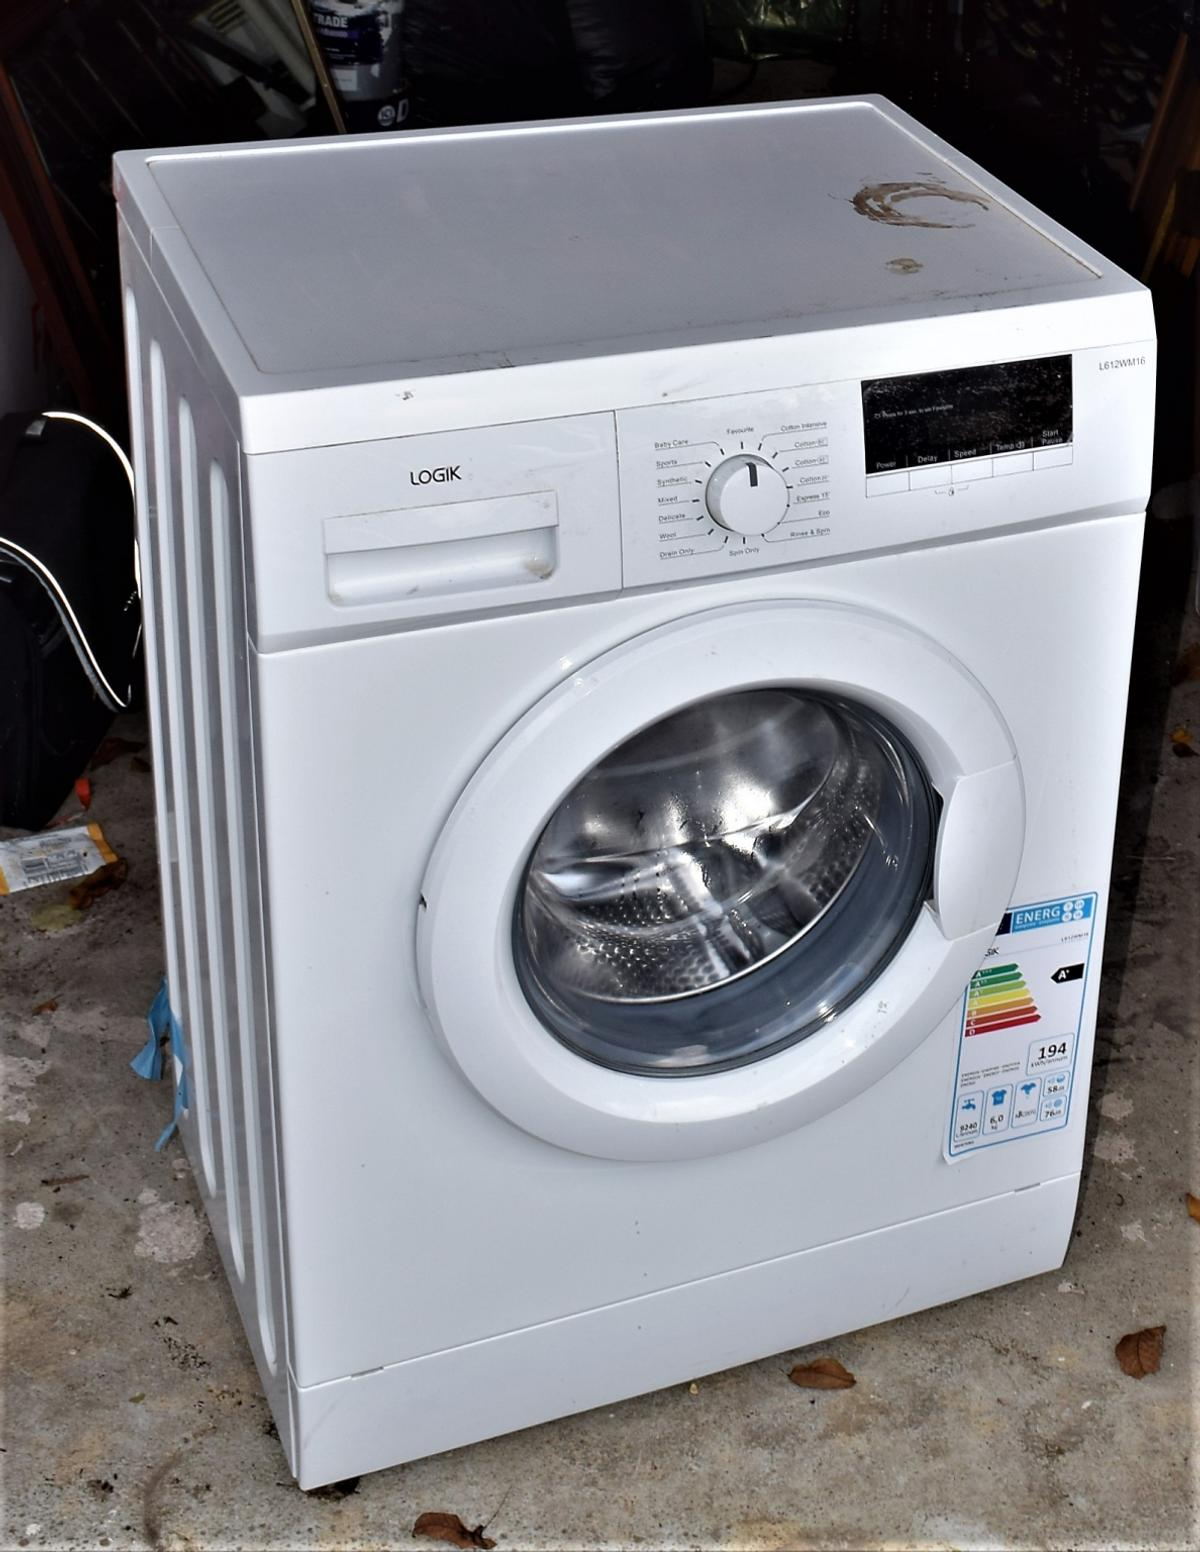 Logik A Washing Machine 1 Year Old In Tw8 London For 163 89